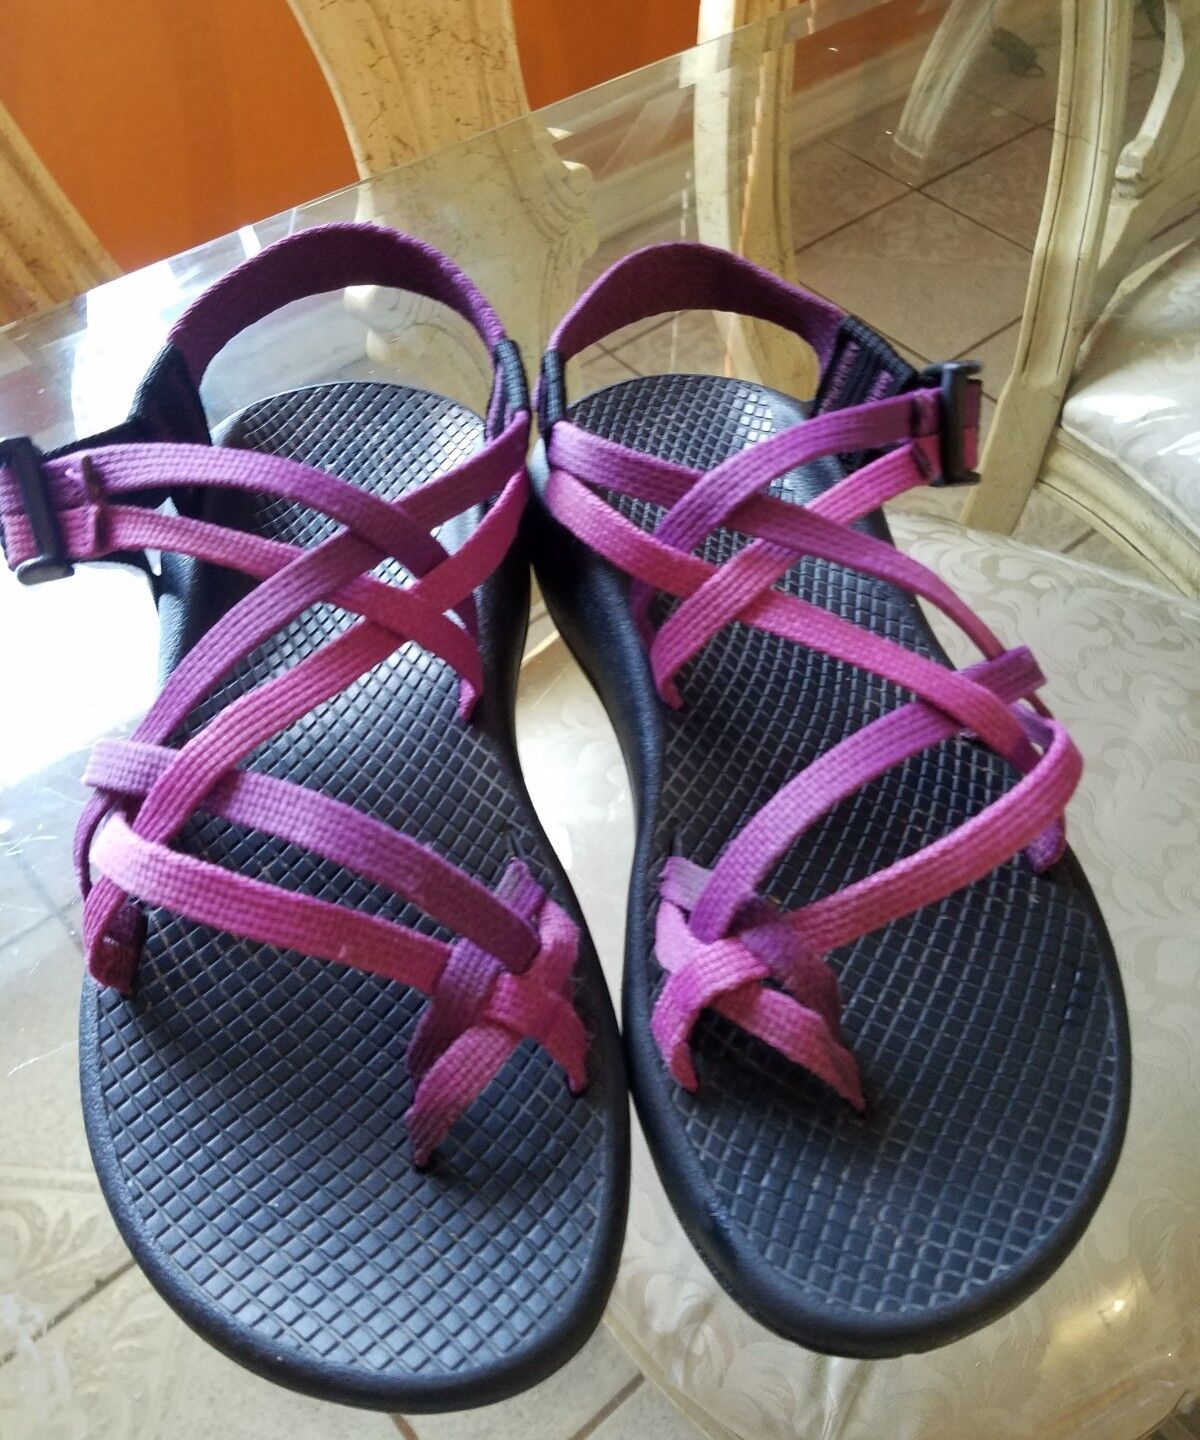 Chaco Strappy Purple Vibram Support Sandales Schuhes Damenschuhe SZ W6